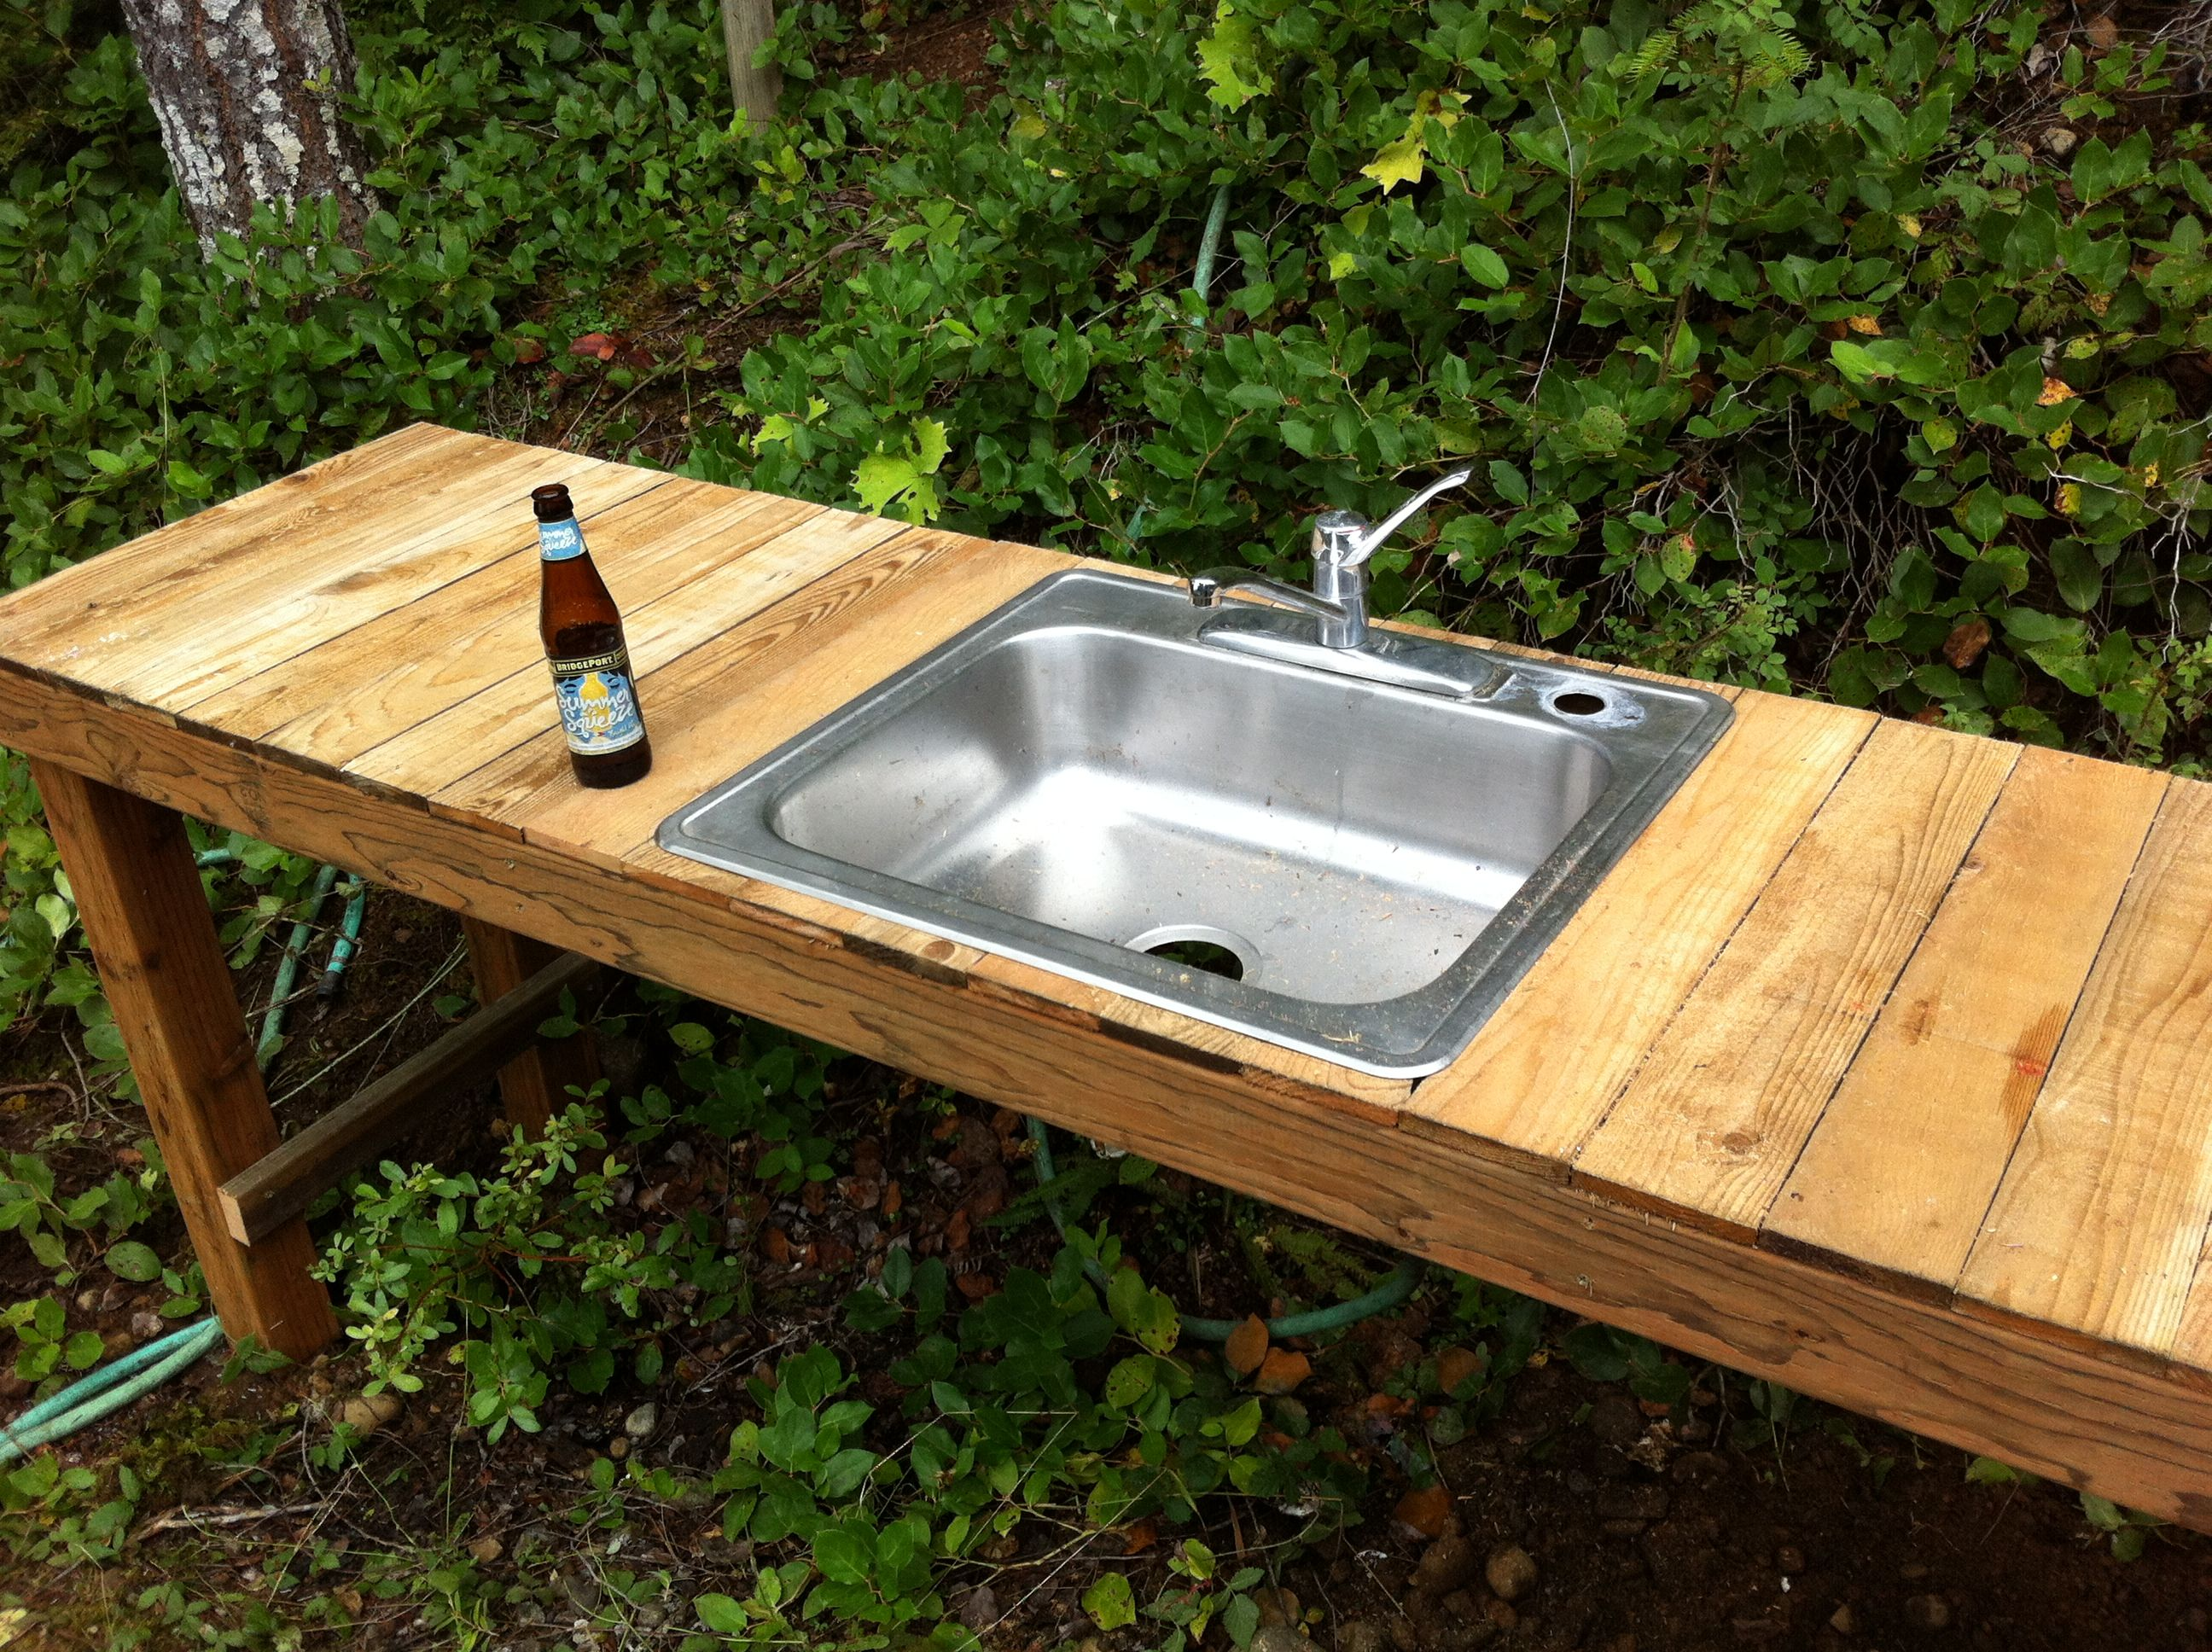 sink kitchen ideash large station how lovely great outdoor with to size an designs i decor make full kitchens of